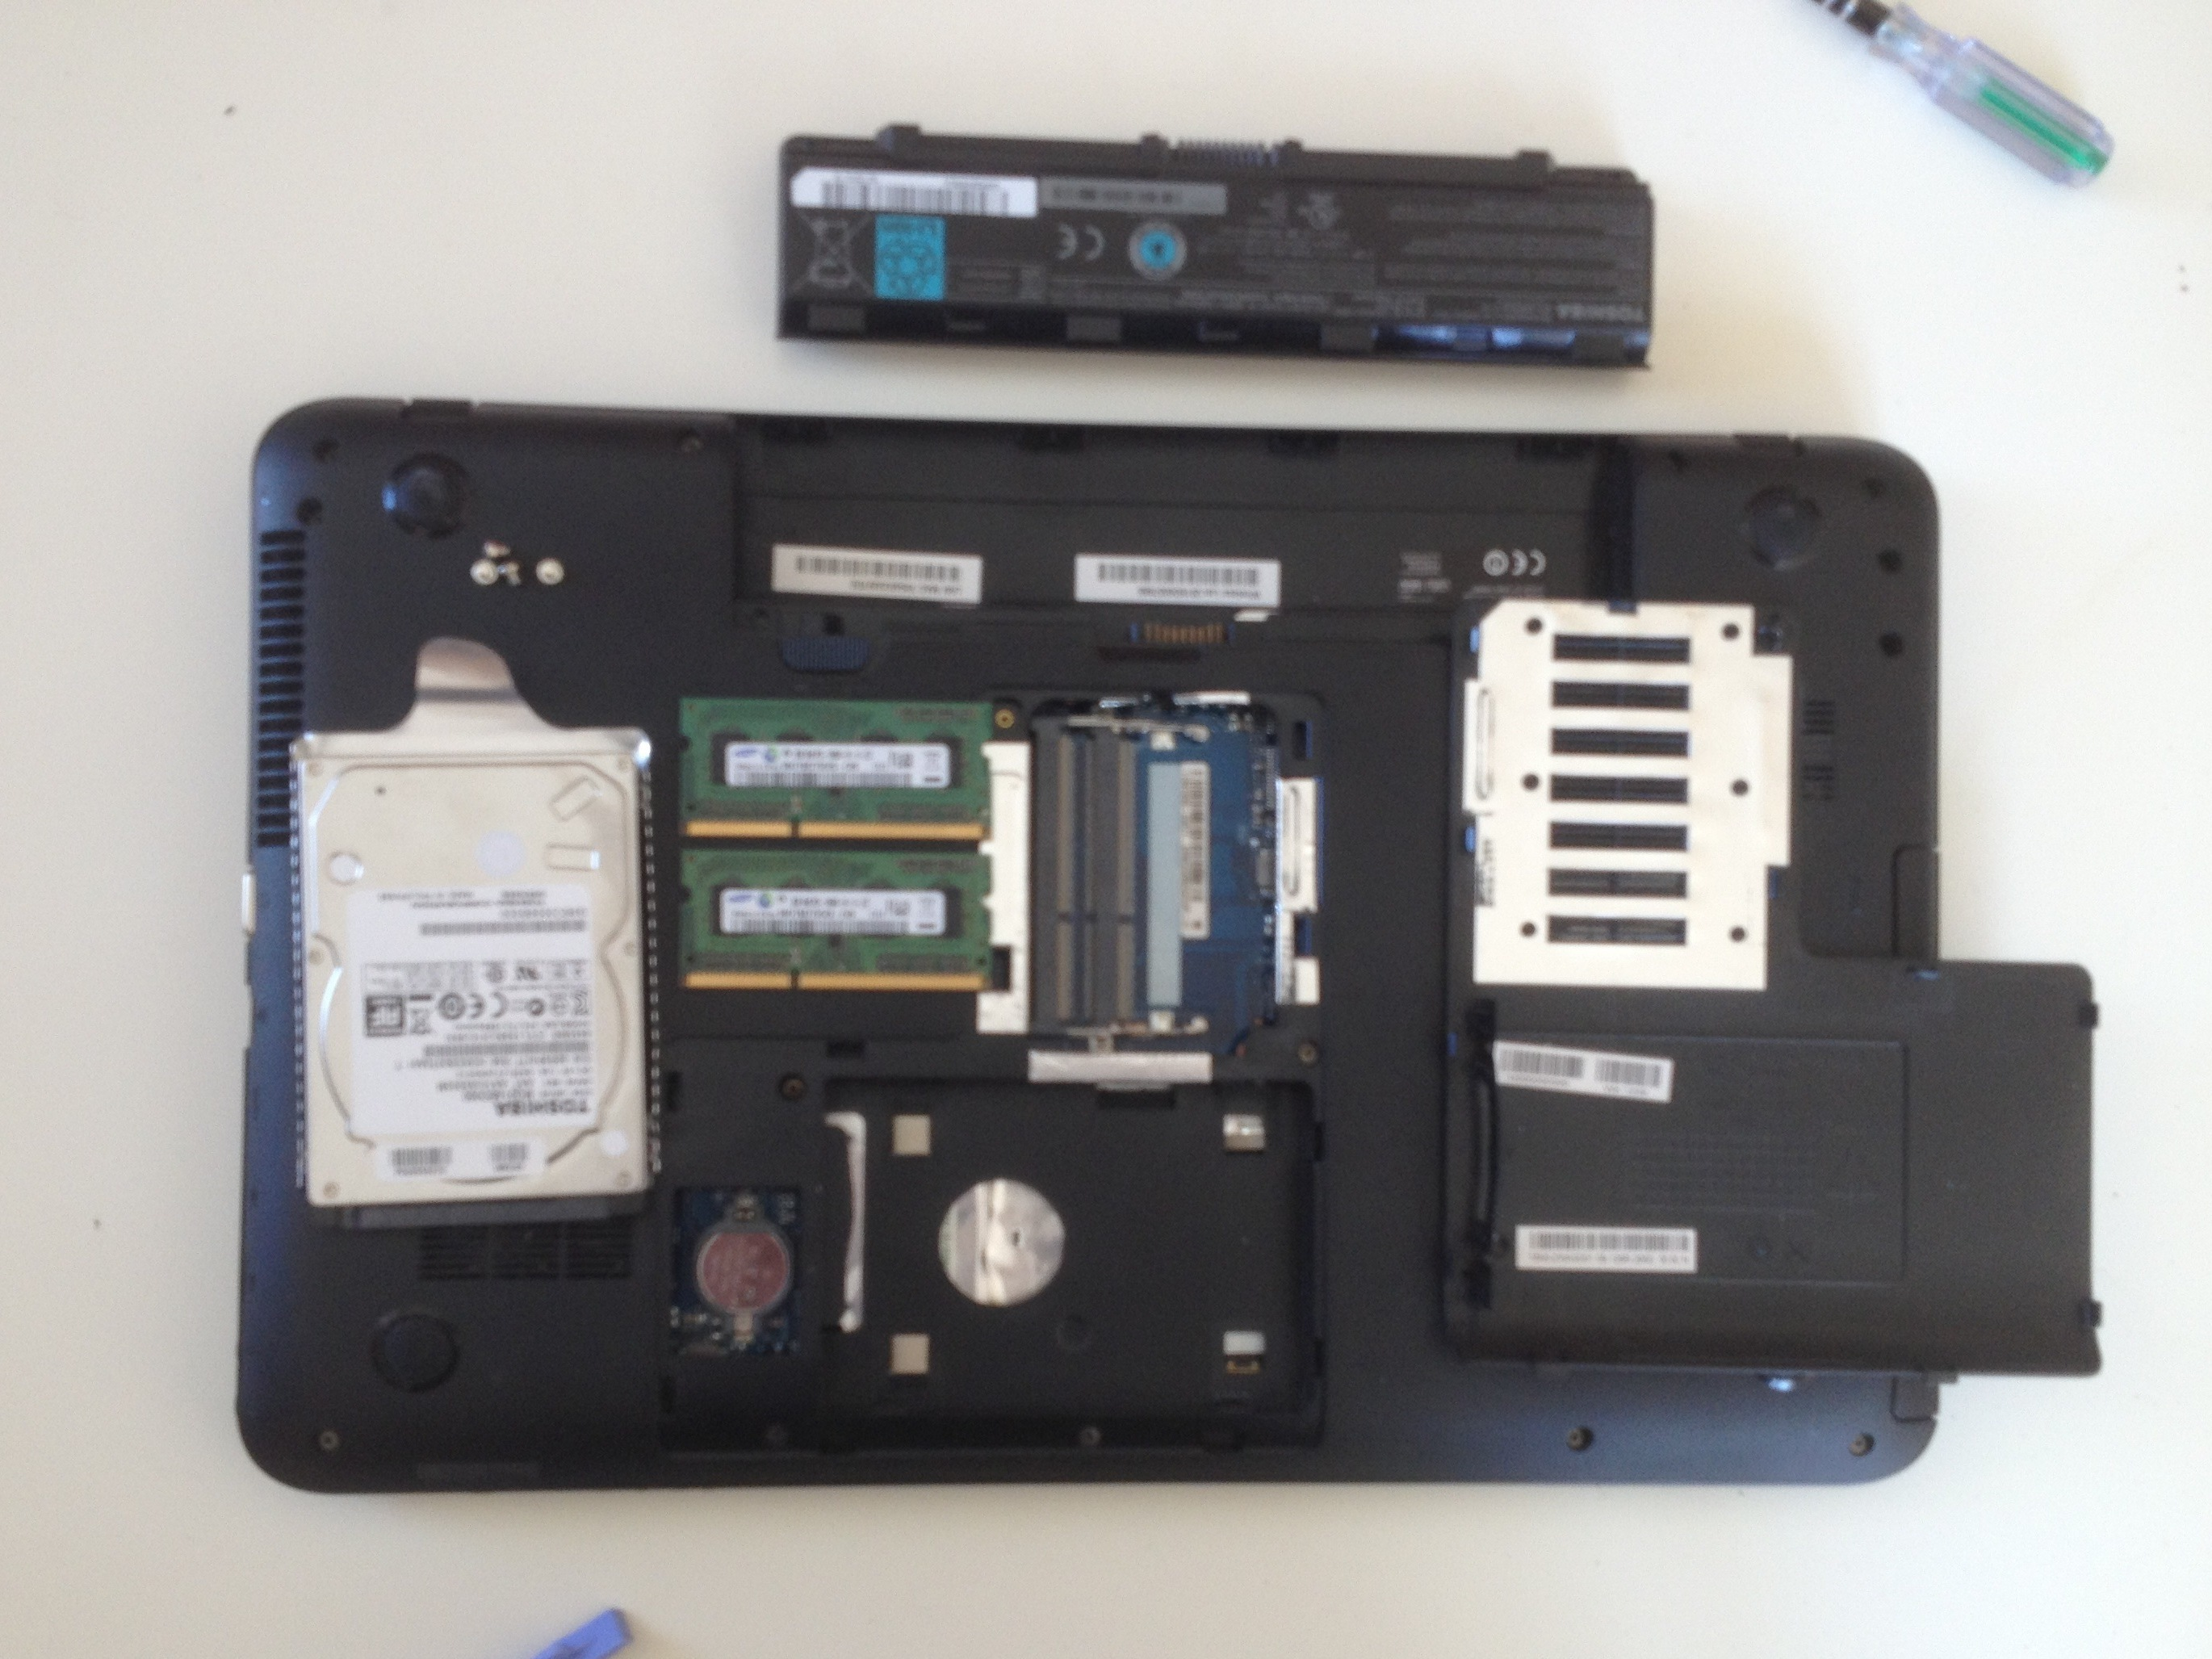 Toshiba Satellite C850 Repair Ifixit Collection Laptop Parts Diagram Pictures Diagrams Hdd Ram Memory